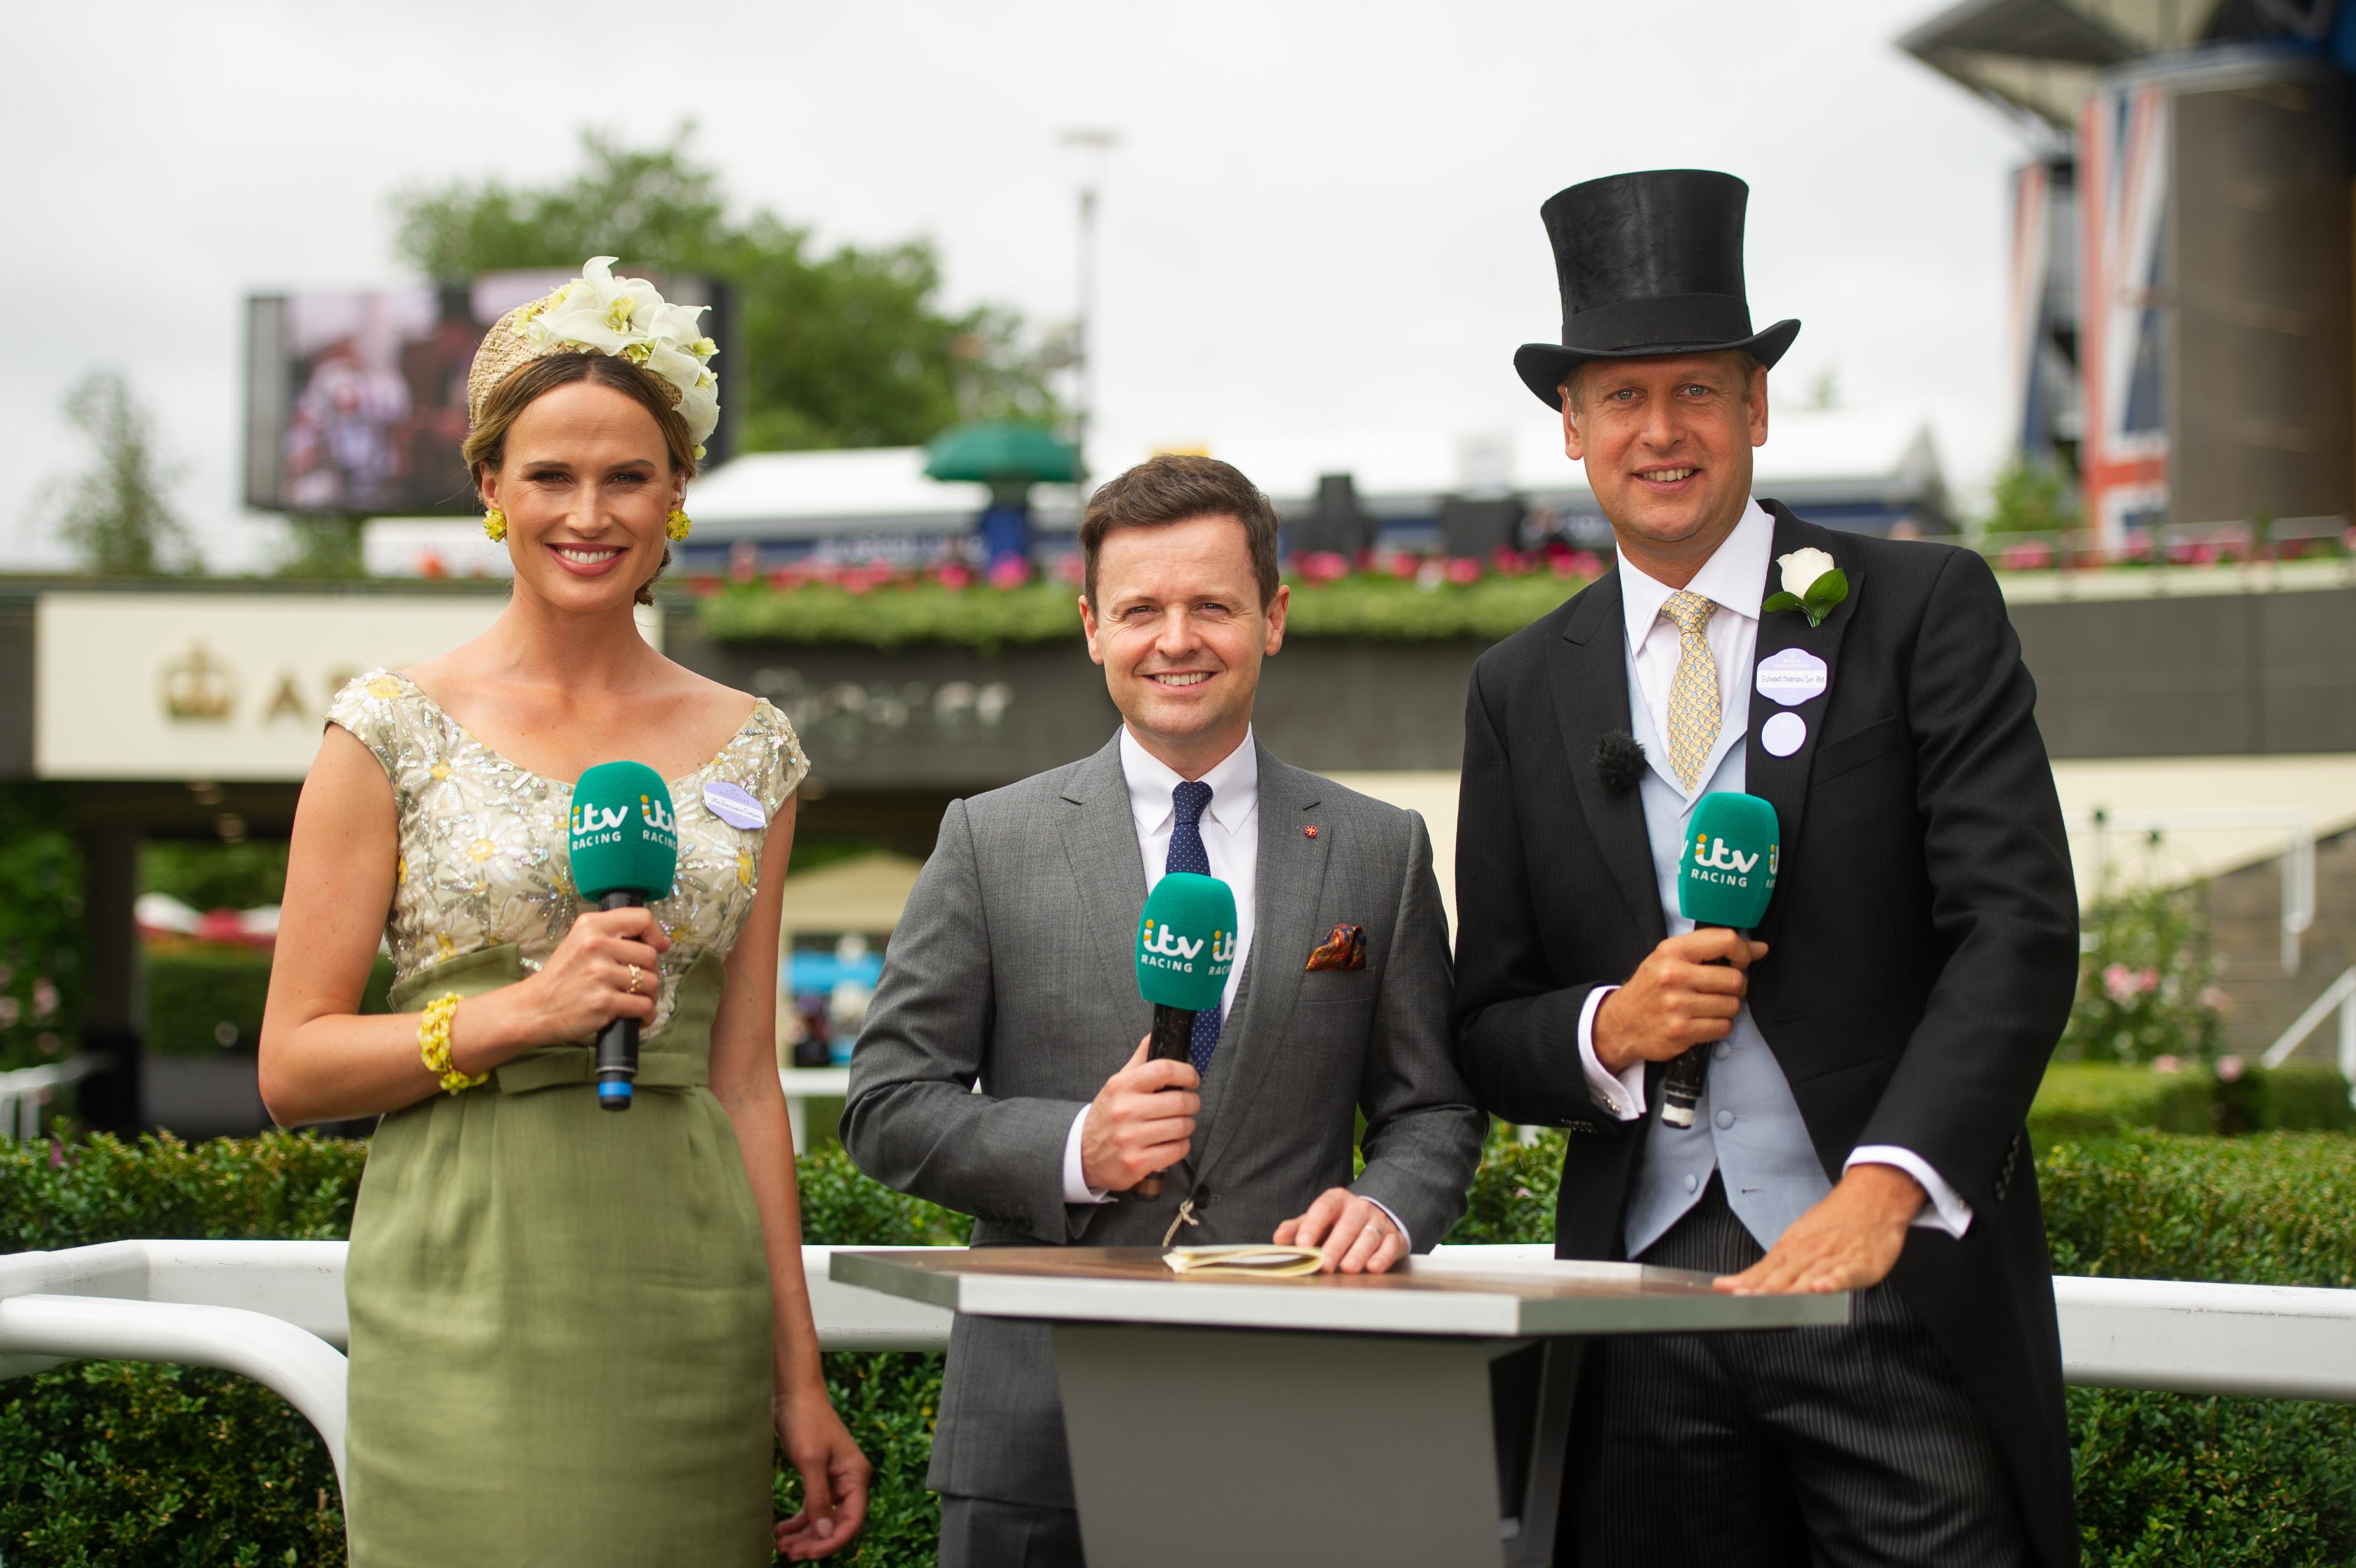 Francesca Cumani, ITV Racing, The Races, Ladies Day, Ascot Races, Royal Ascot, ITVE Presenter, Sarah Kate Byrne,